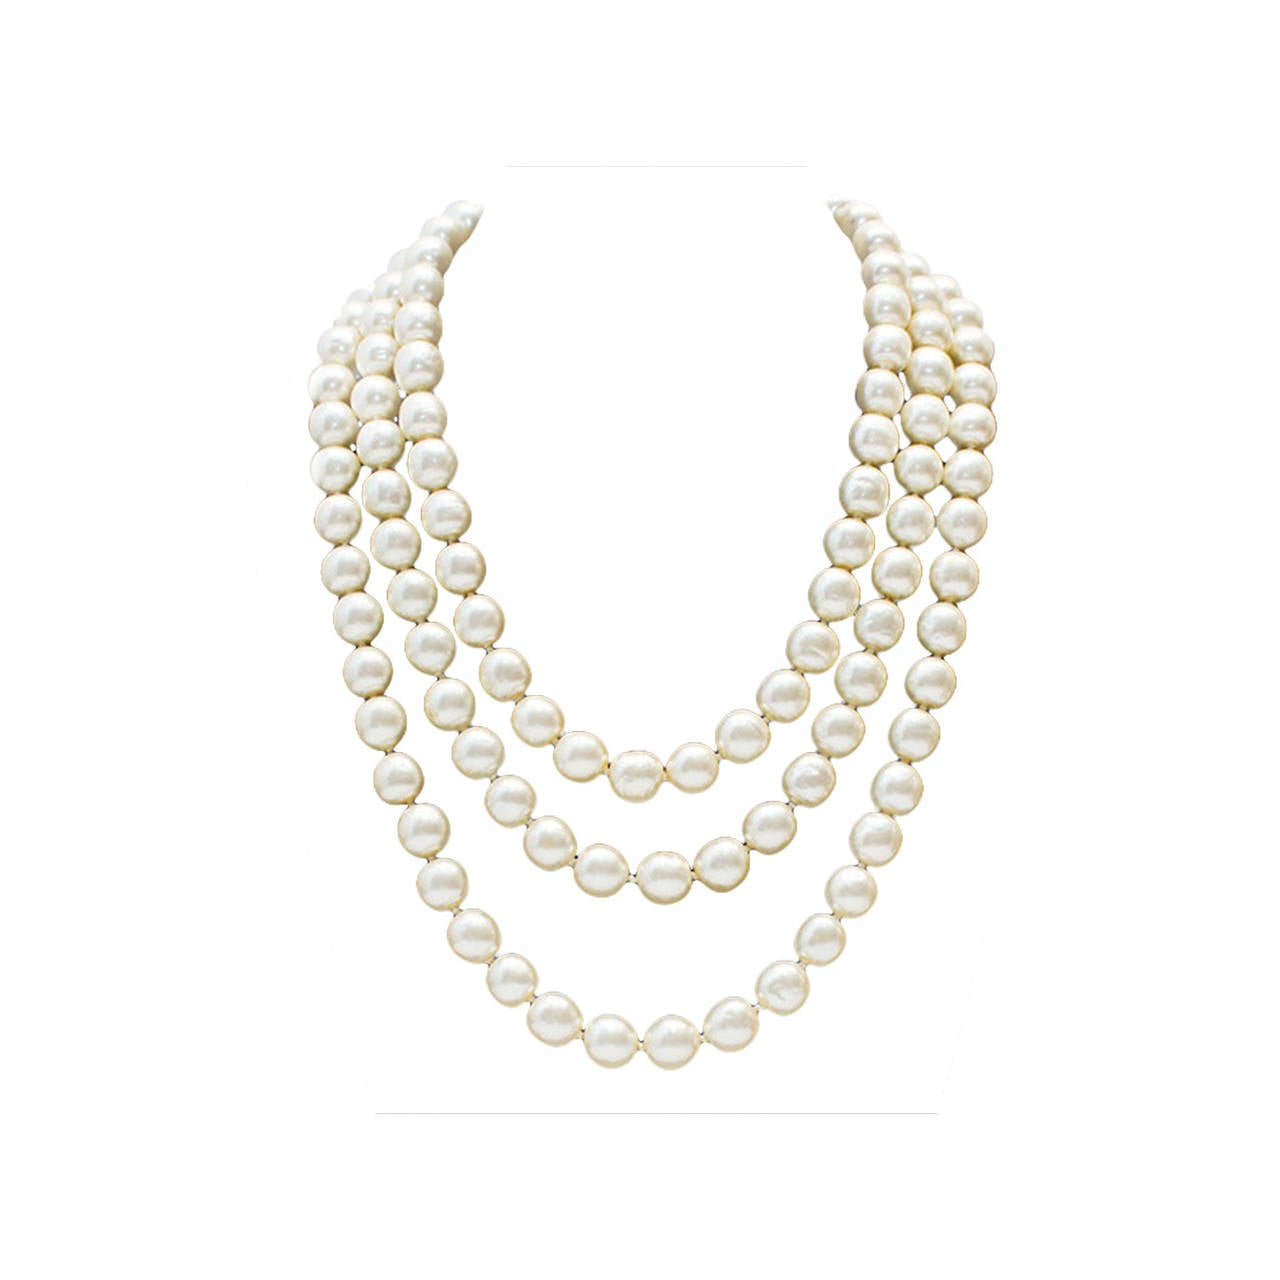 1980s Chanel Long Pearl Necklace with Red Stone Clasp 1